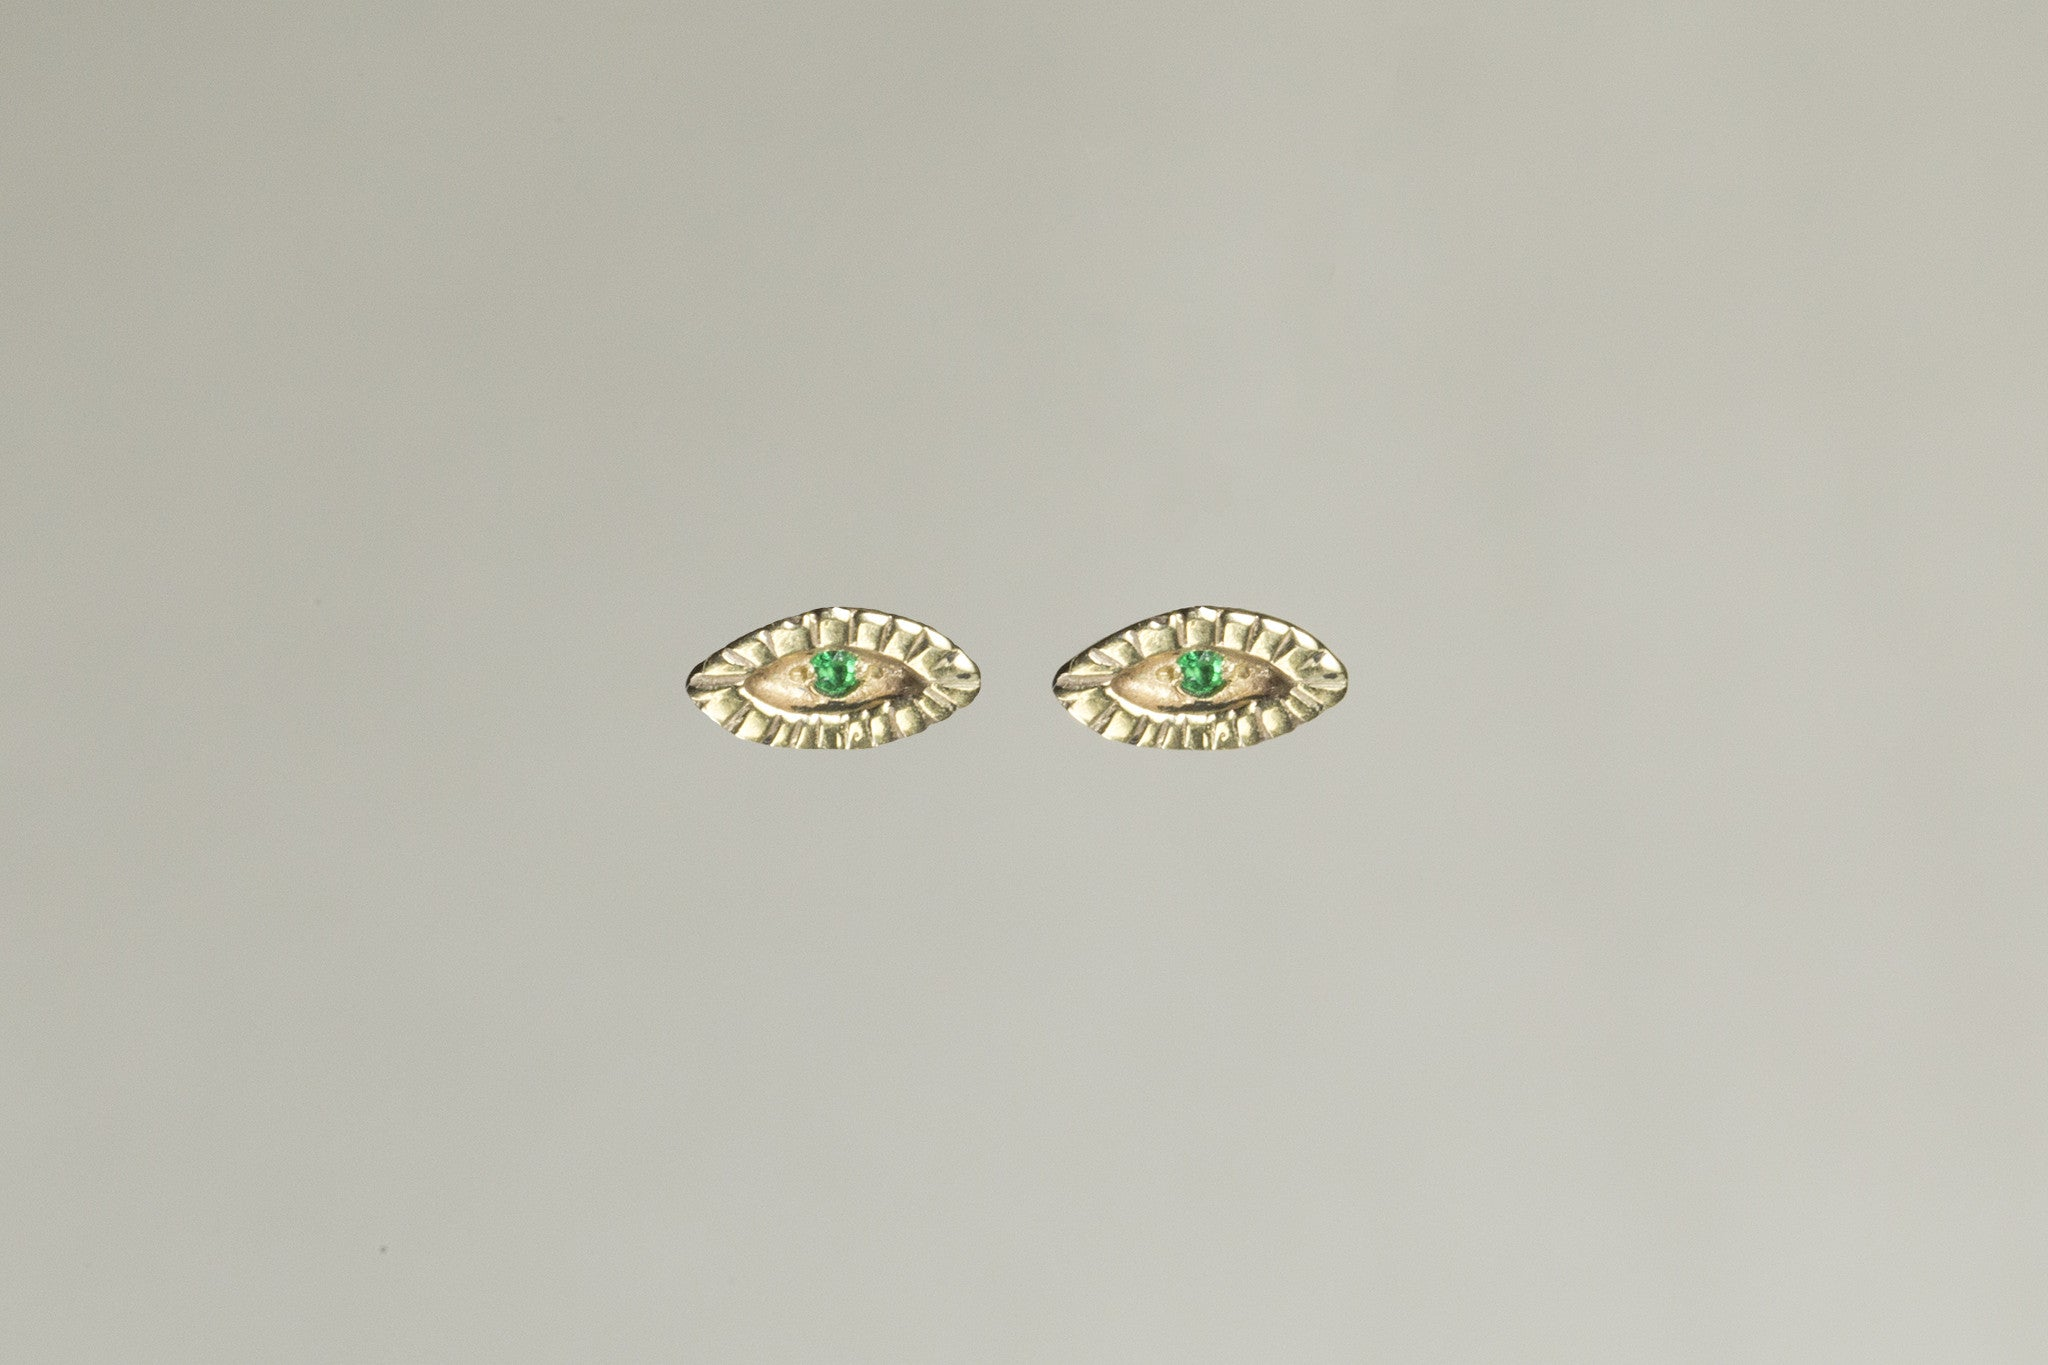 Tiny Eye Gold Stud Earrings with Emerald